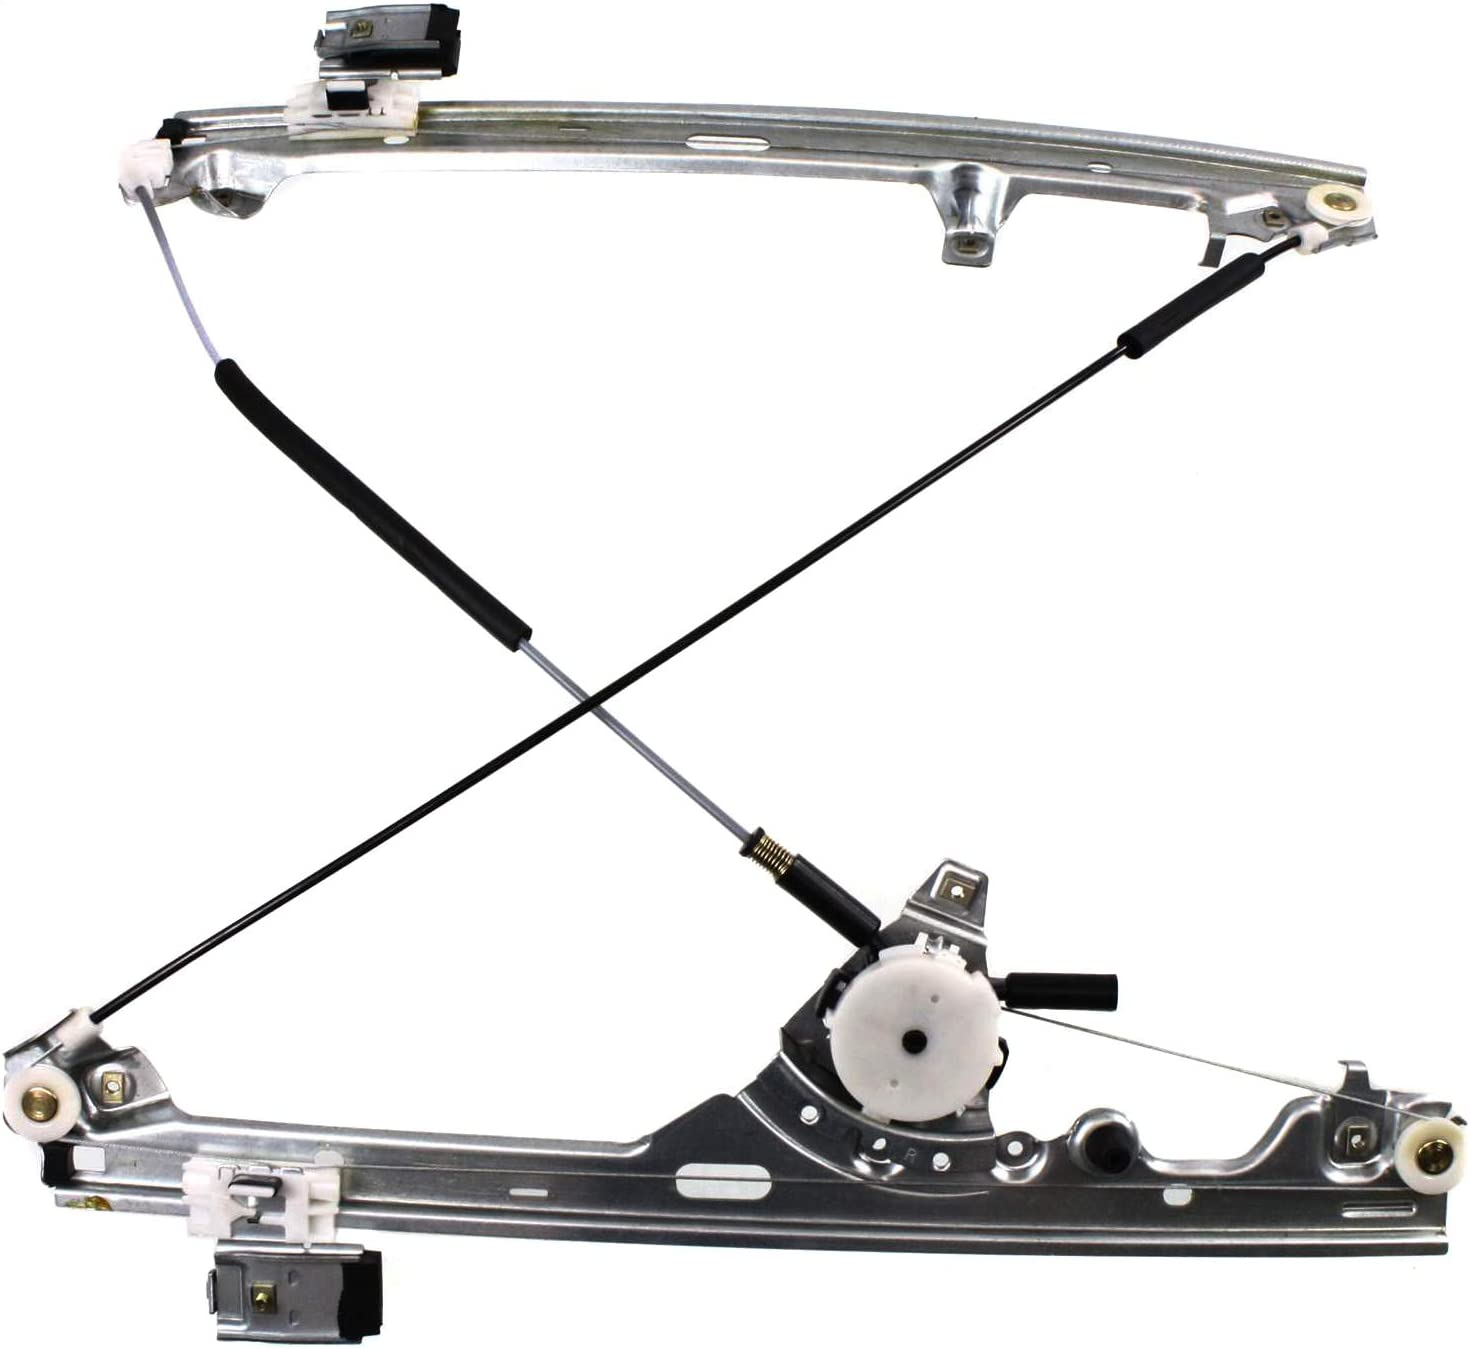 Evan-Fischer Front Window Regulator Silverado with Ranking TOP14 Spring new work one after another compatible Si